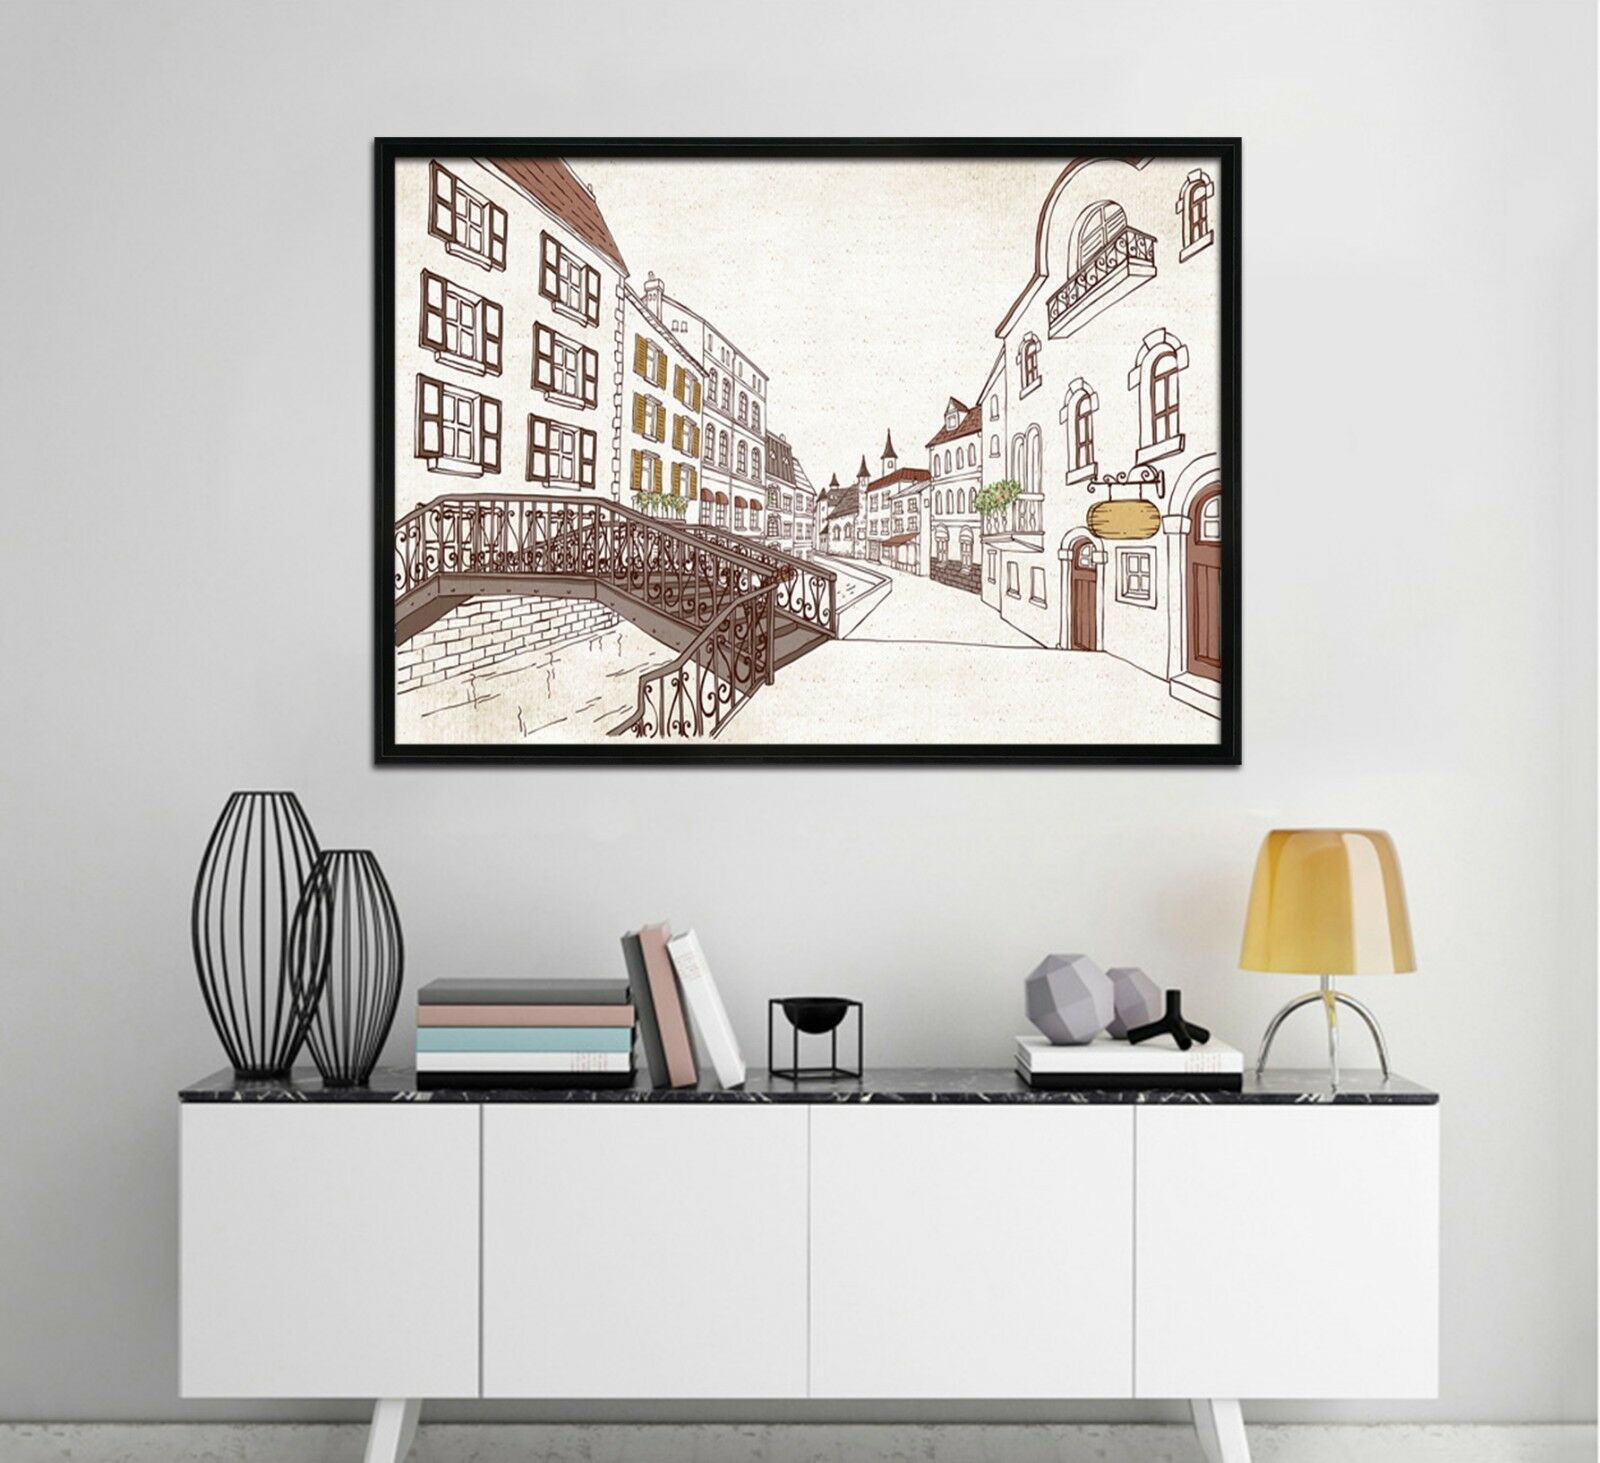 3D Hand Painted Street View 3 Framed Poster Home Decor Print Painting WALLPAPER